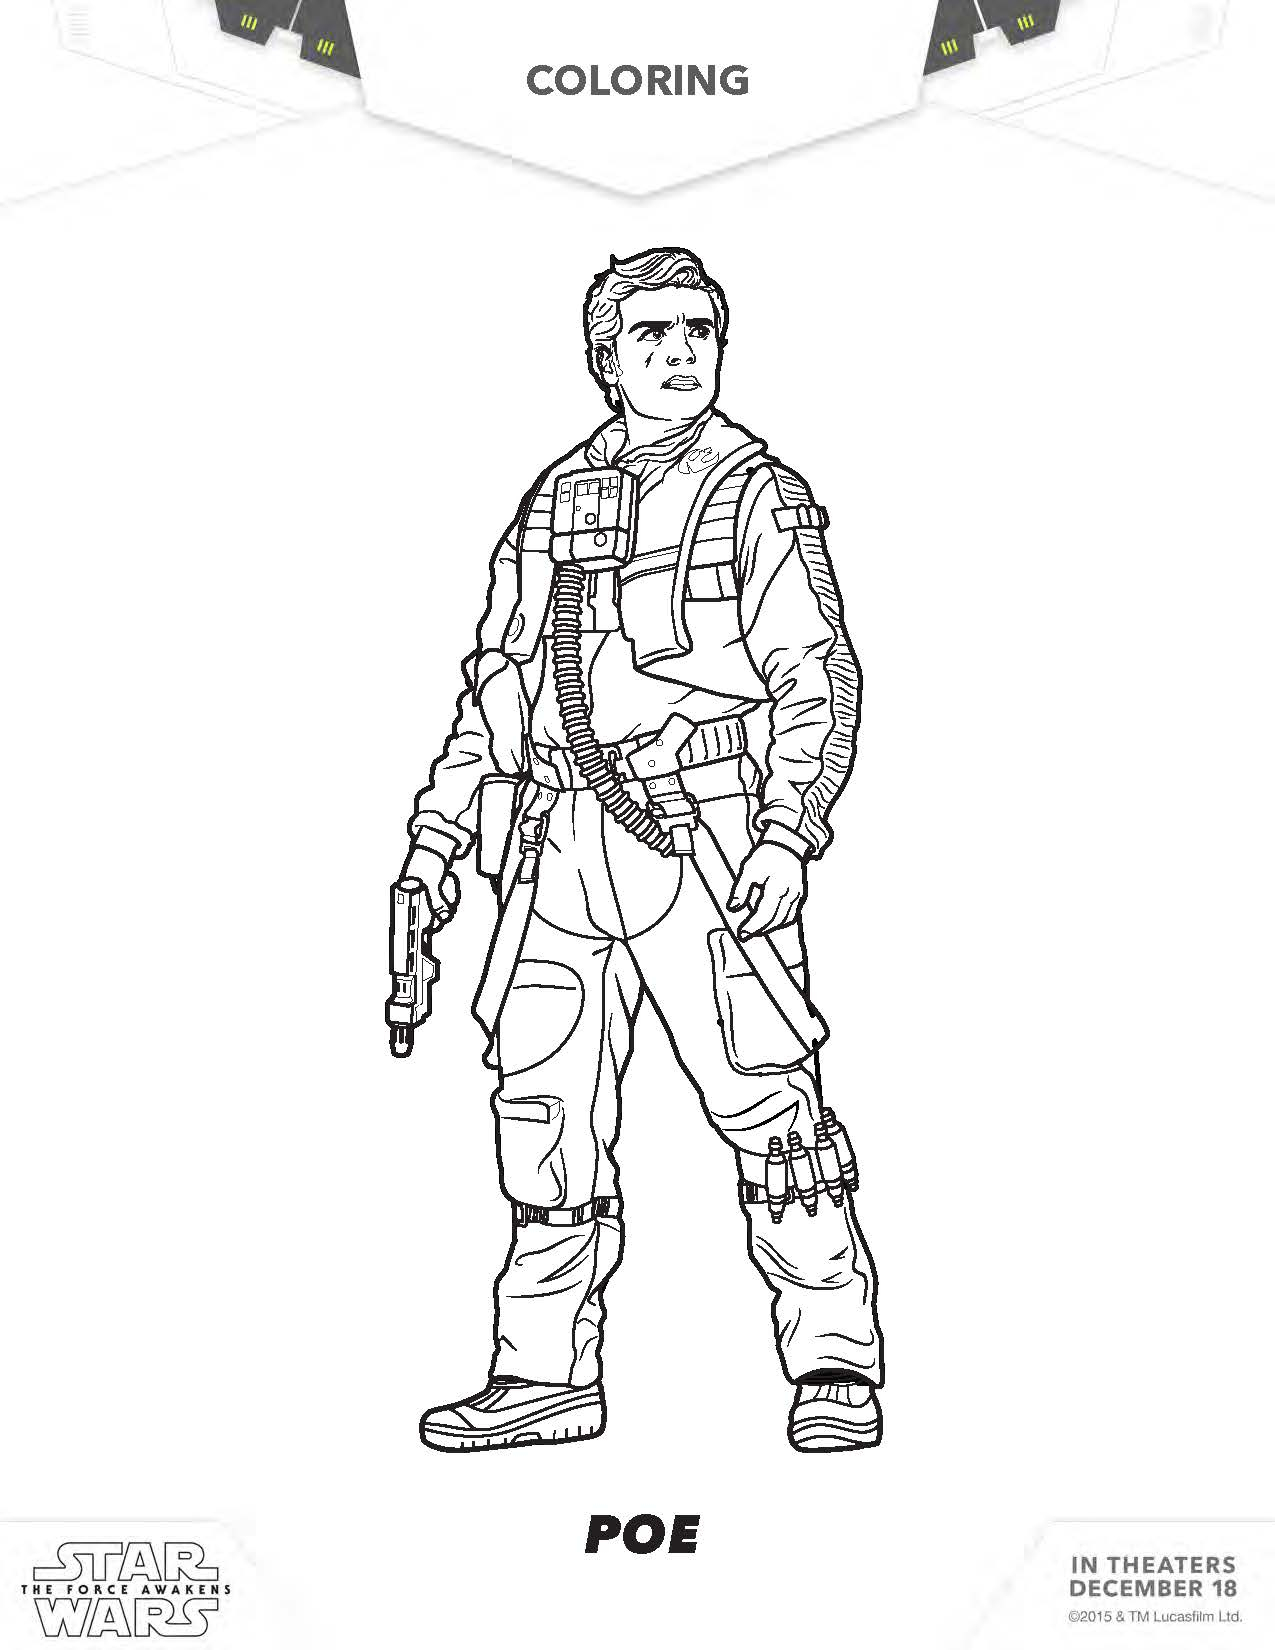 Star Wars the force Awakens Coloring Pages  Printable 11p - To print for your project